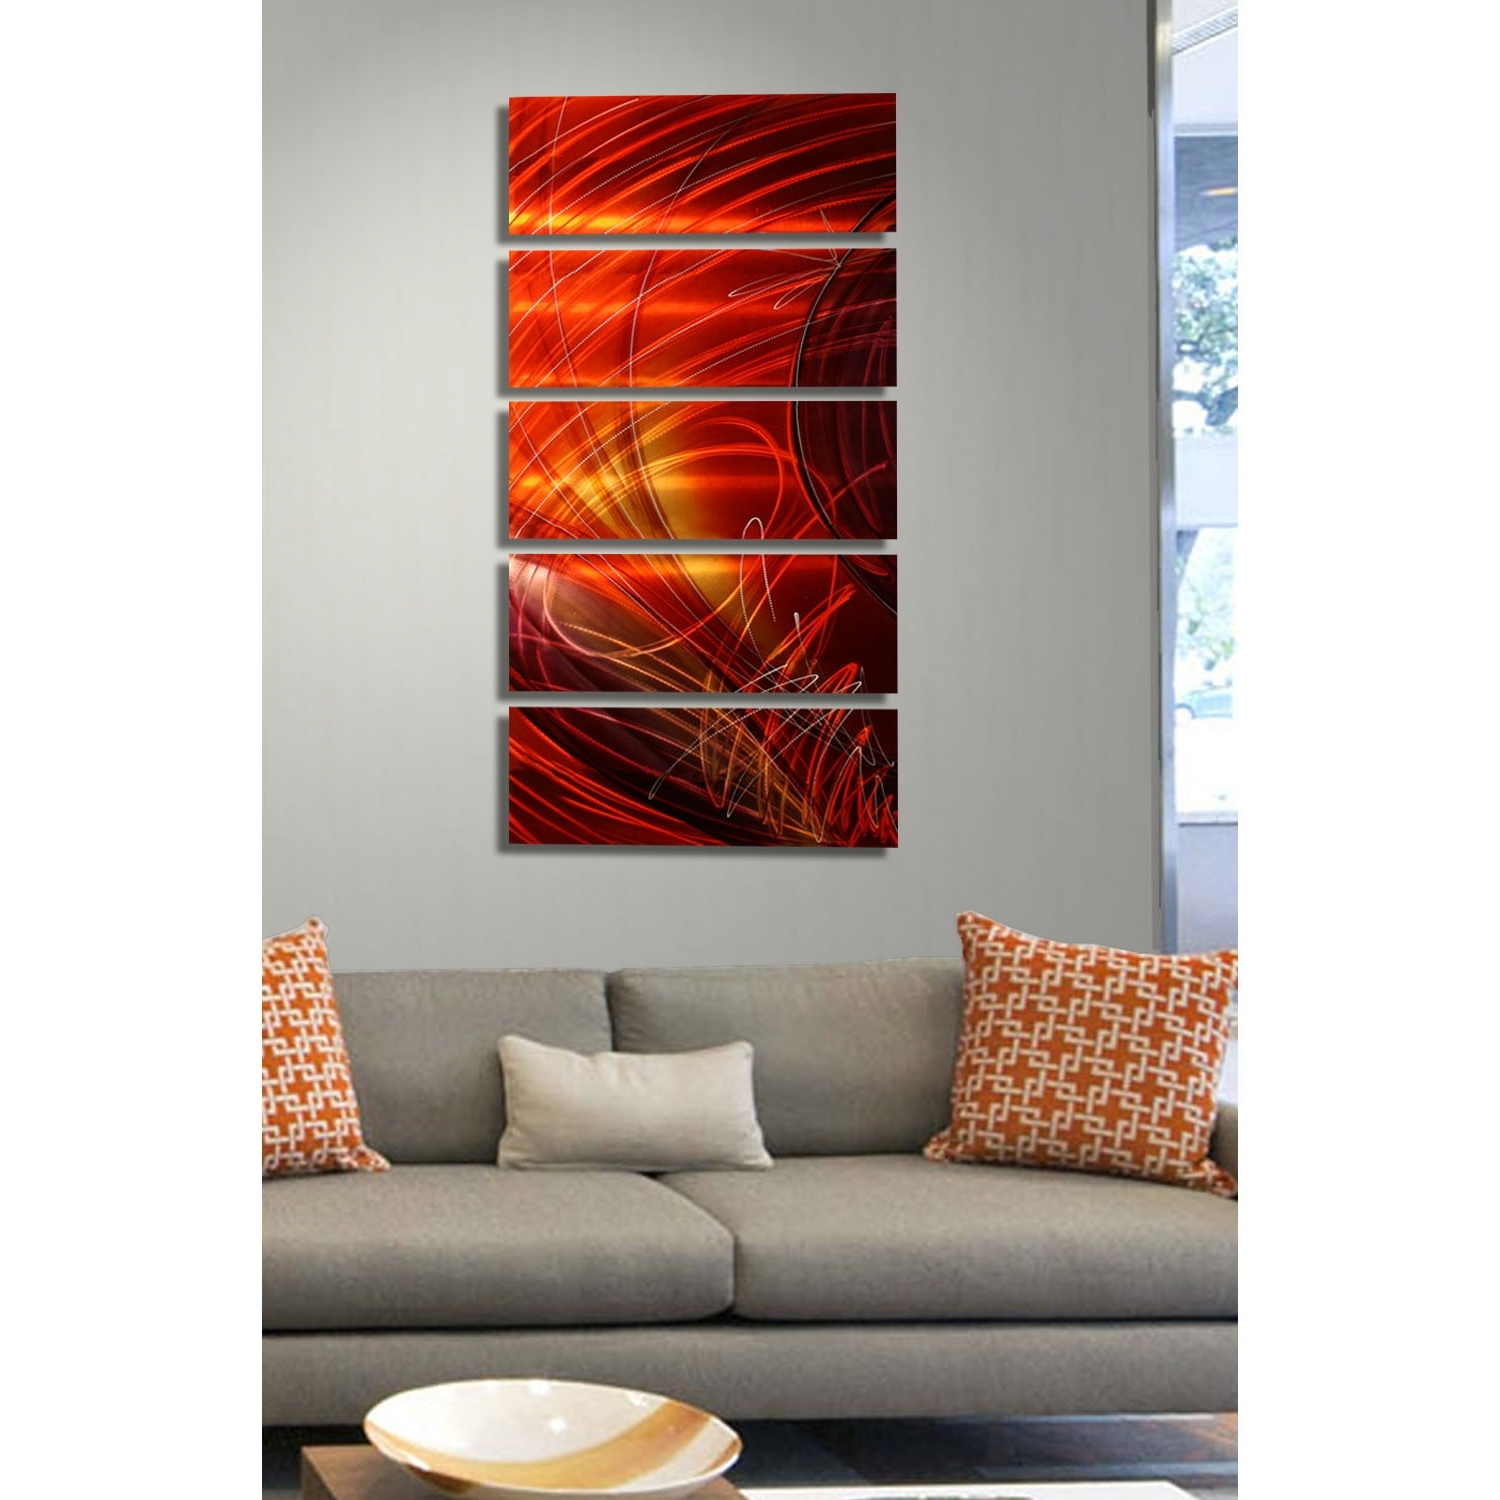 5 Panel Wall Art within Latest Ruby Sky - Red, Gold And Purple Metal Wall Art - 5 Panel Wall Décor